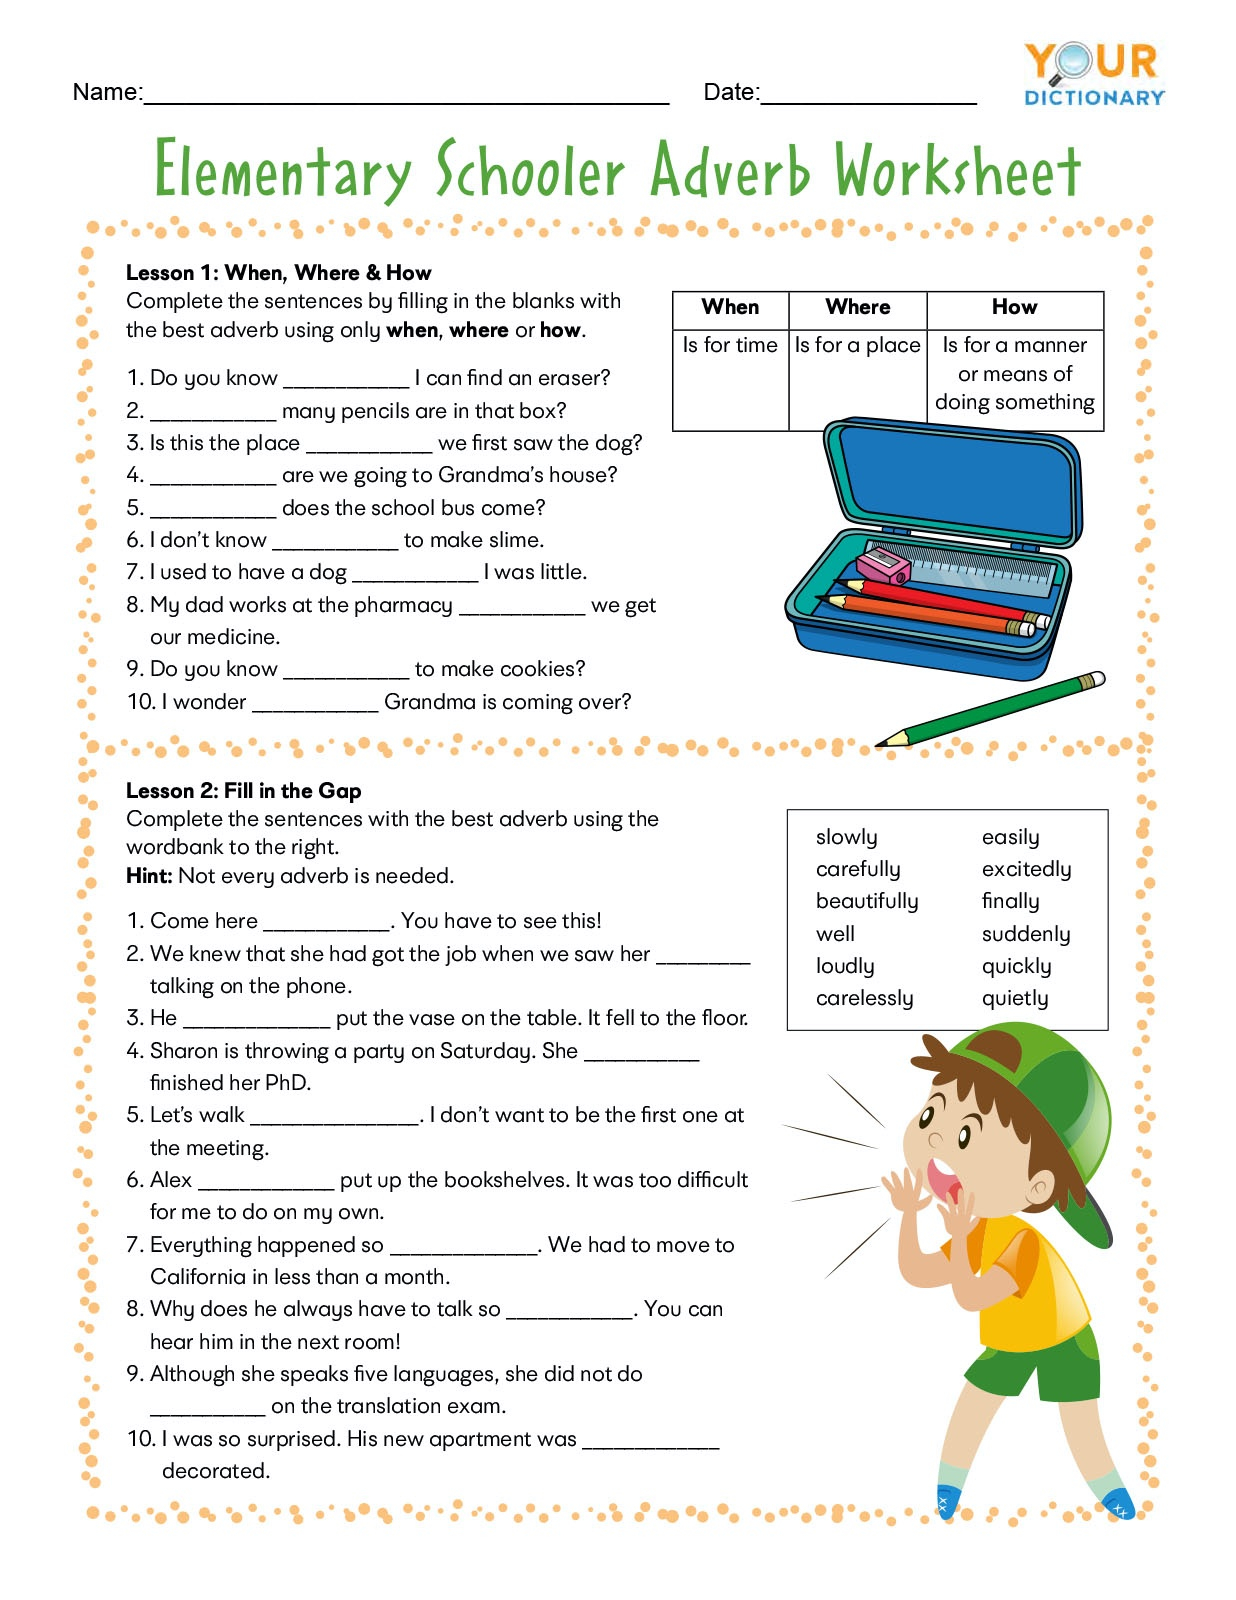 Adverb Worksheets For Elementary And Middle School Adverbs